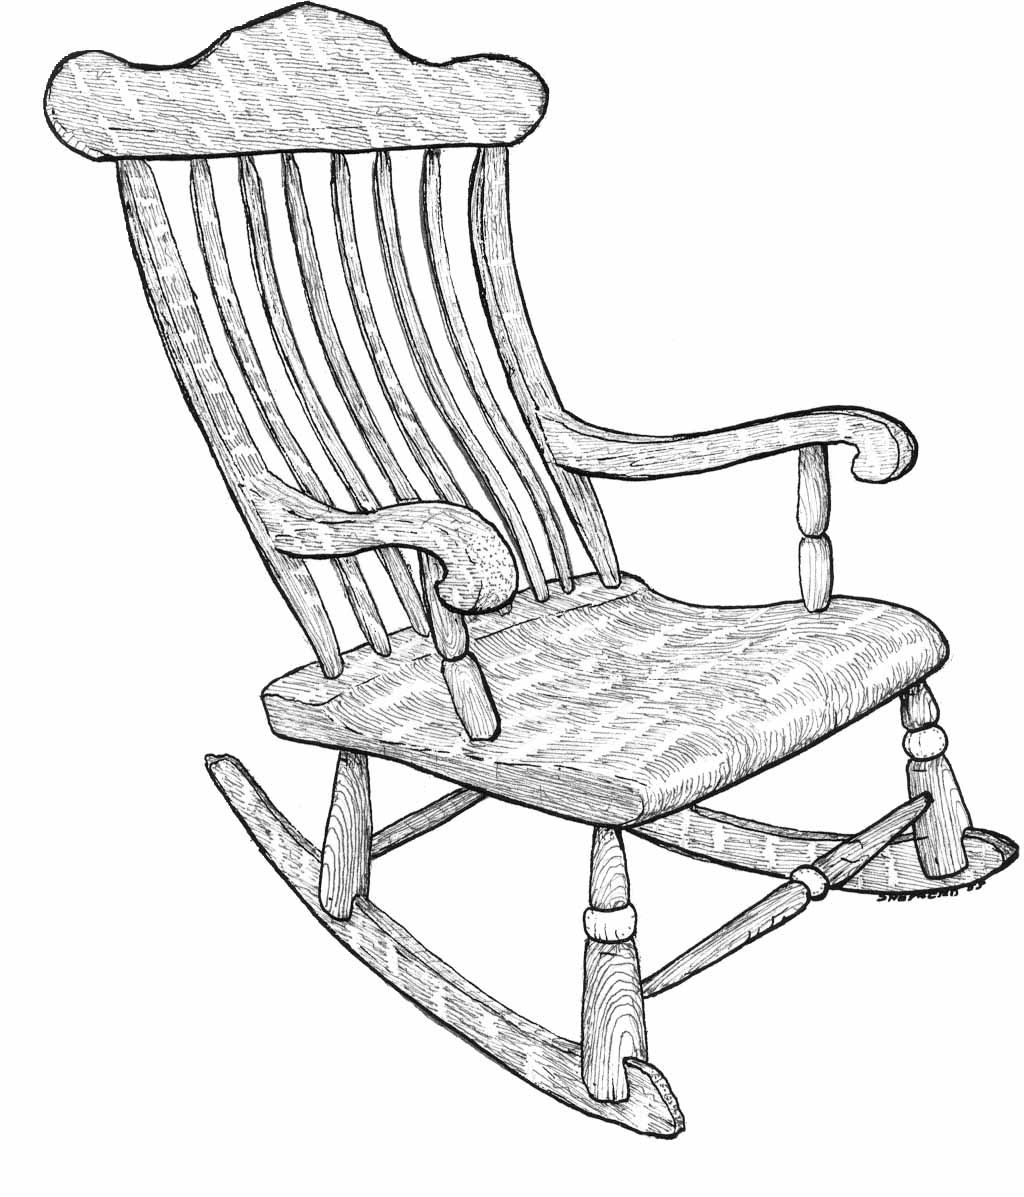 drawing chair how to draw a chair feltmagnet drawing chair